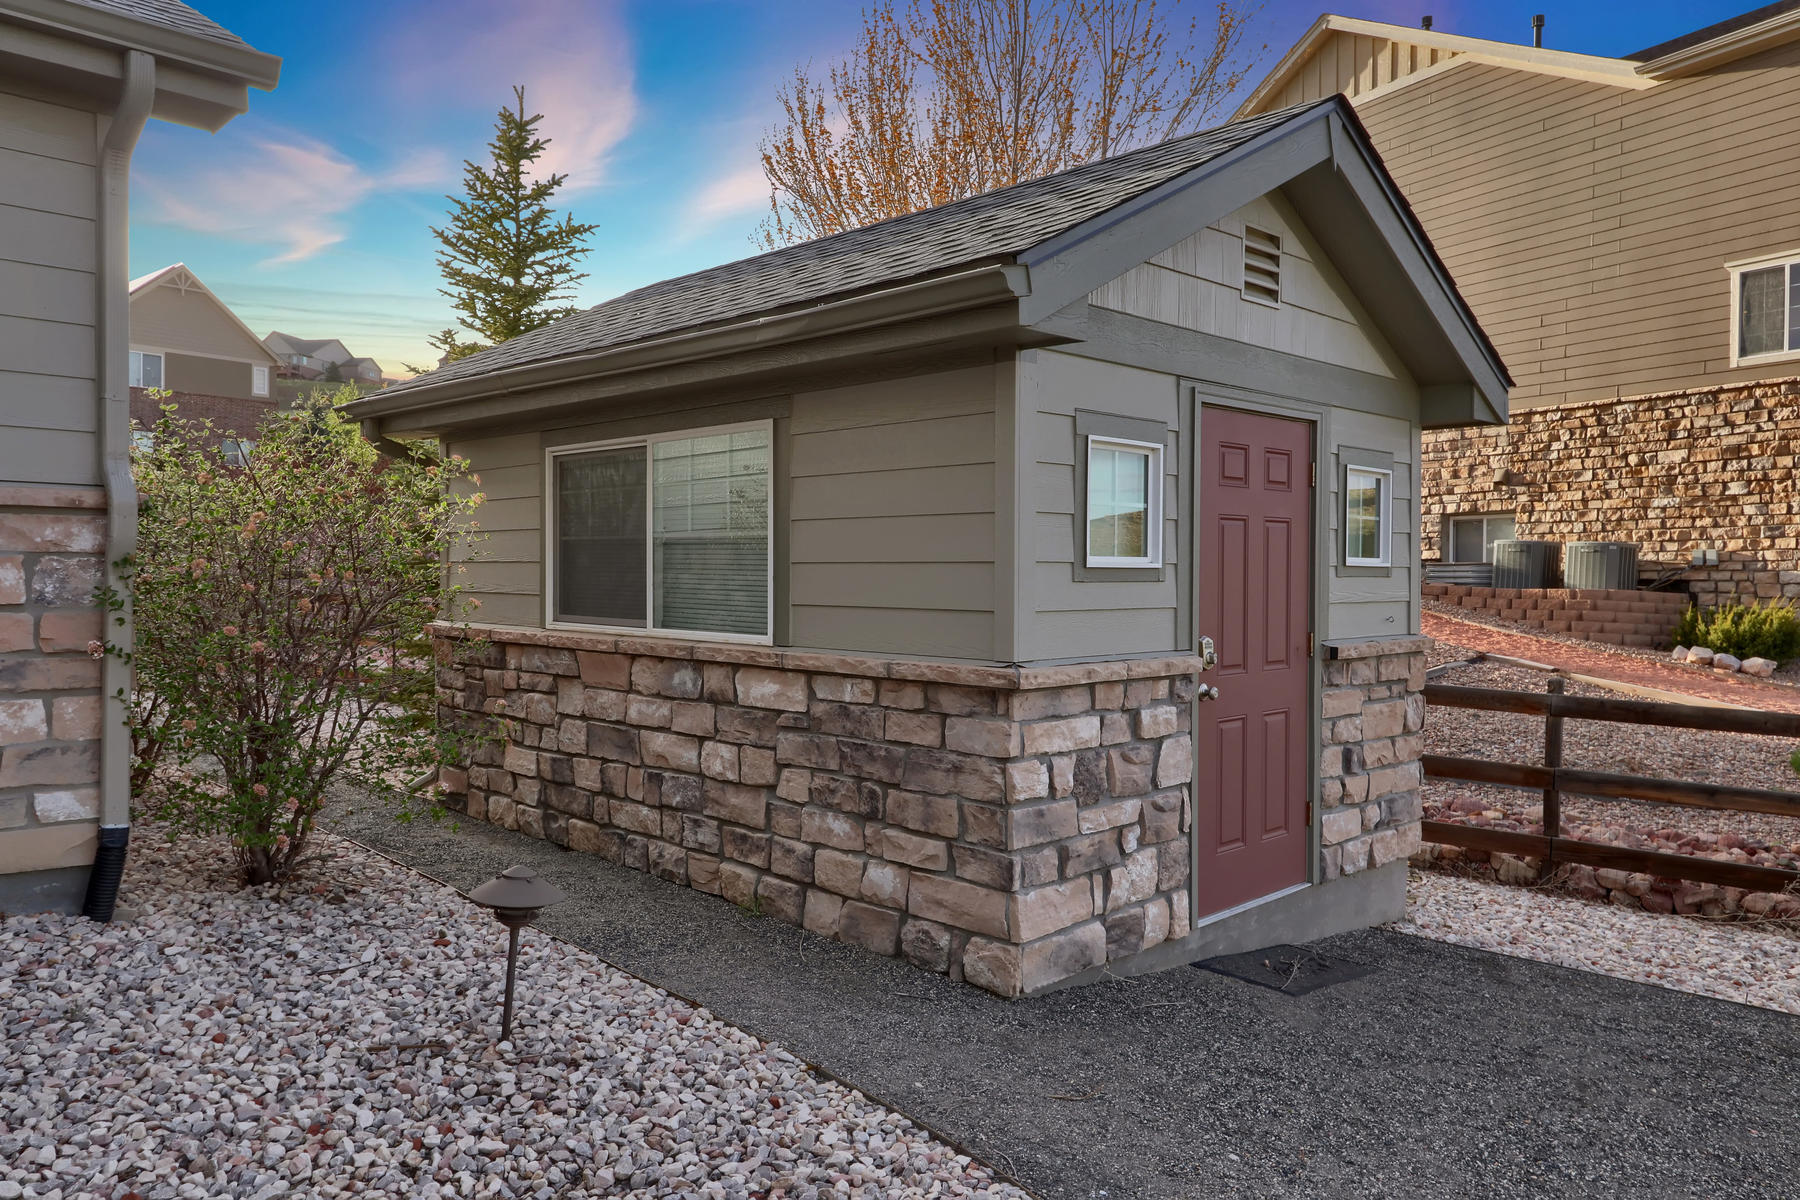 17881 W 77th Dr Arvada CO-062-24-Storage-MLS_Size.jpg